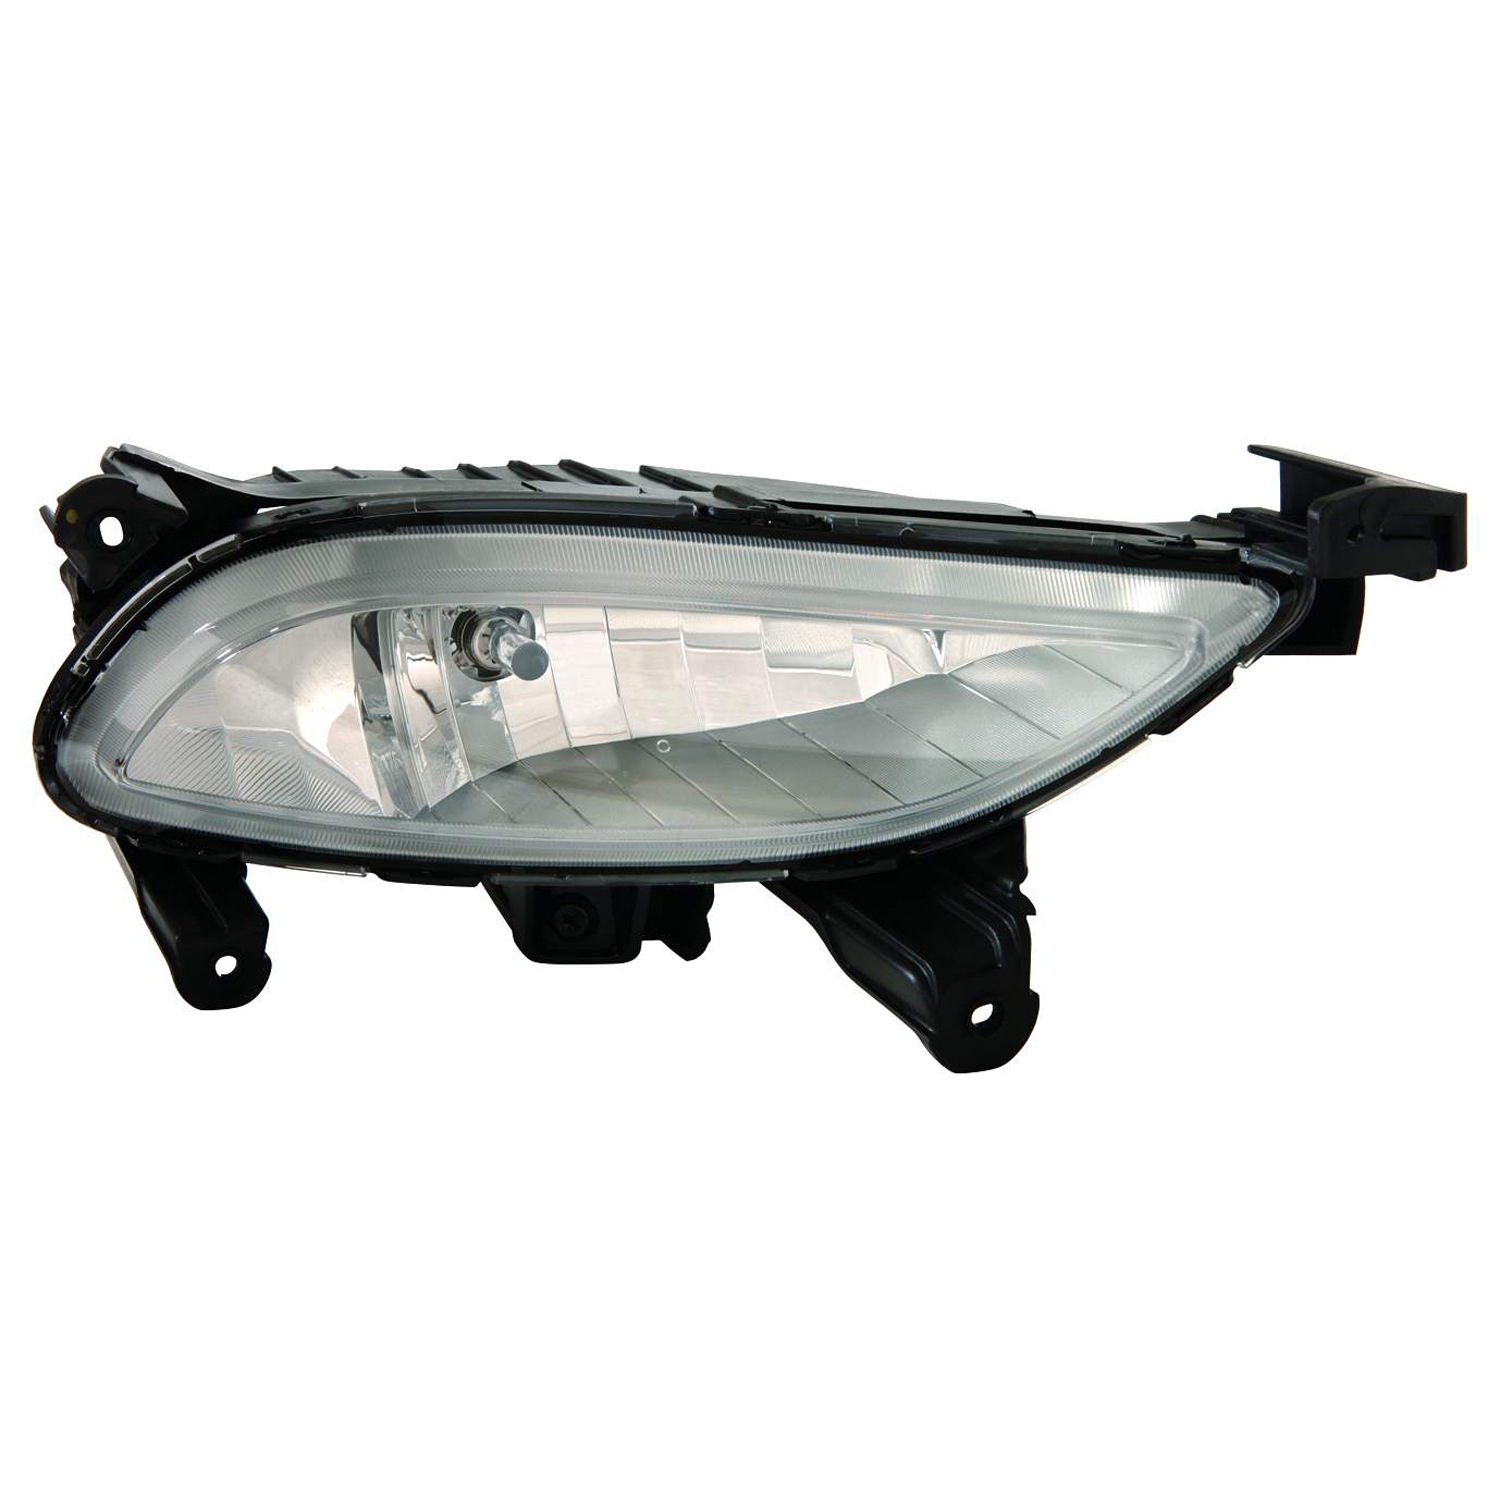 2011-2013 Hyundai Sonata Aftermarket Driver Side Front Fog Lamp Assembly  922013Q000 CAPA